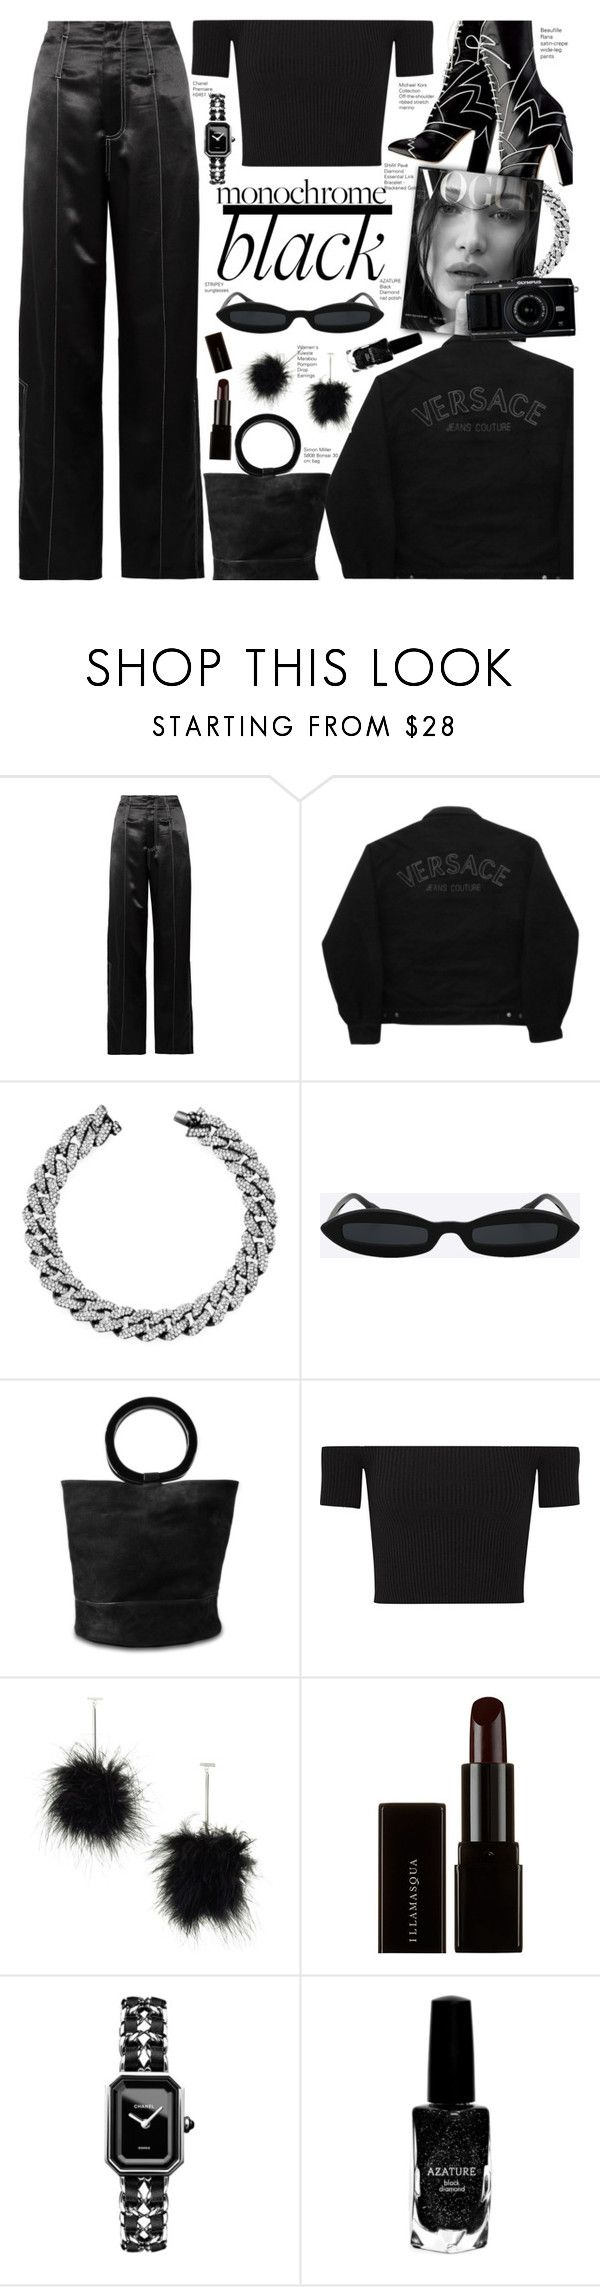 """""""Mission Monochrome: All-Black Outfit"""" by voguefashion101 ❤ liked on Polyvore featuring Beaufille, Versace Jeans Couture, Shay, Simon Miller, Michael Kors, Tuleste, Illamasqua, Chanel and Azature"""